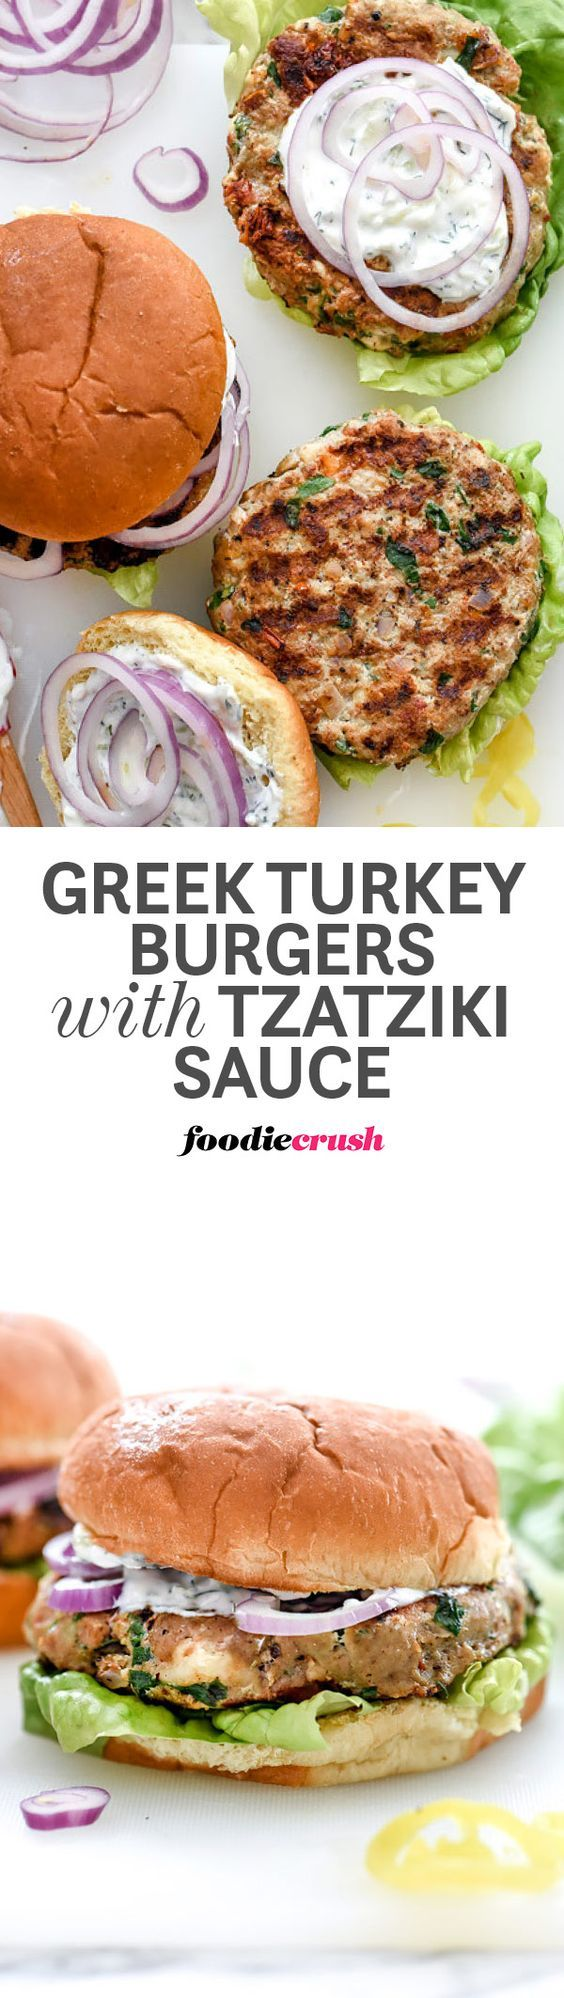 Turkey burgers made with the Greek flavors of garlic, oregano, spinach, sun-dried tomatoes and feta cheese are a healthful option for burger lovers everywhere.   foodiecrush.com #hamburger #turkeyburger #greek